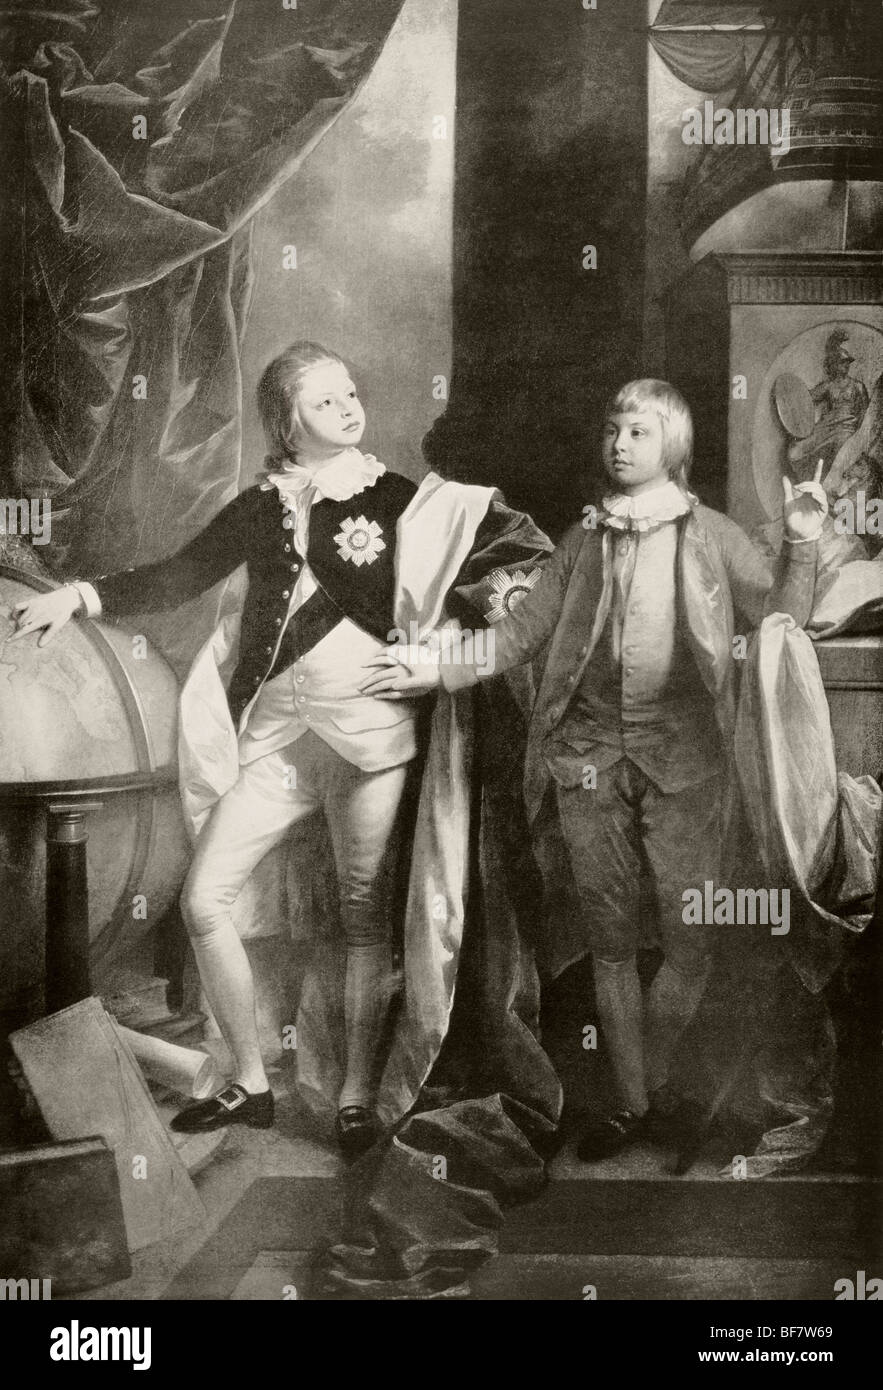 William, Duke of Clarence, later King William IV, left, and Edward Duke of Kent, later father of Queen Victoria, - Stock Image